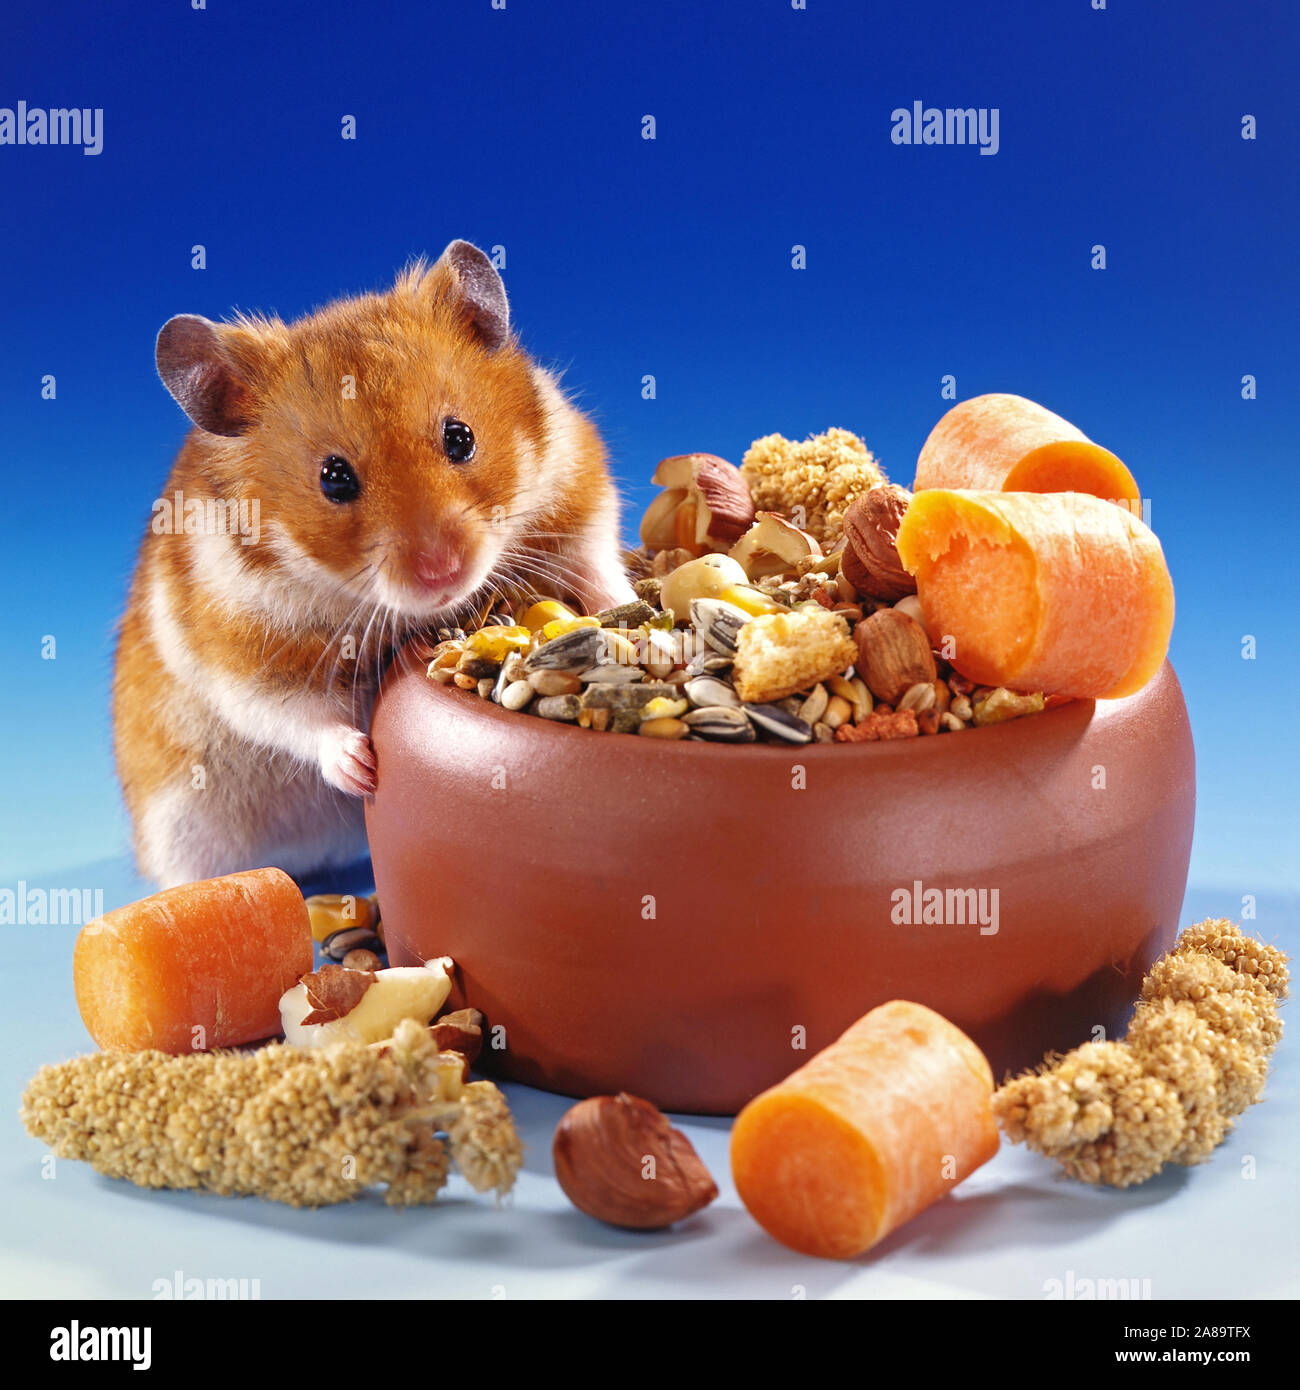 Goldhamster frisst Nagerfutter Stock Photo